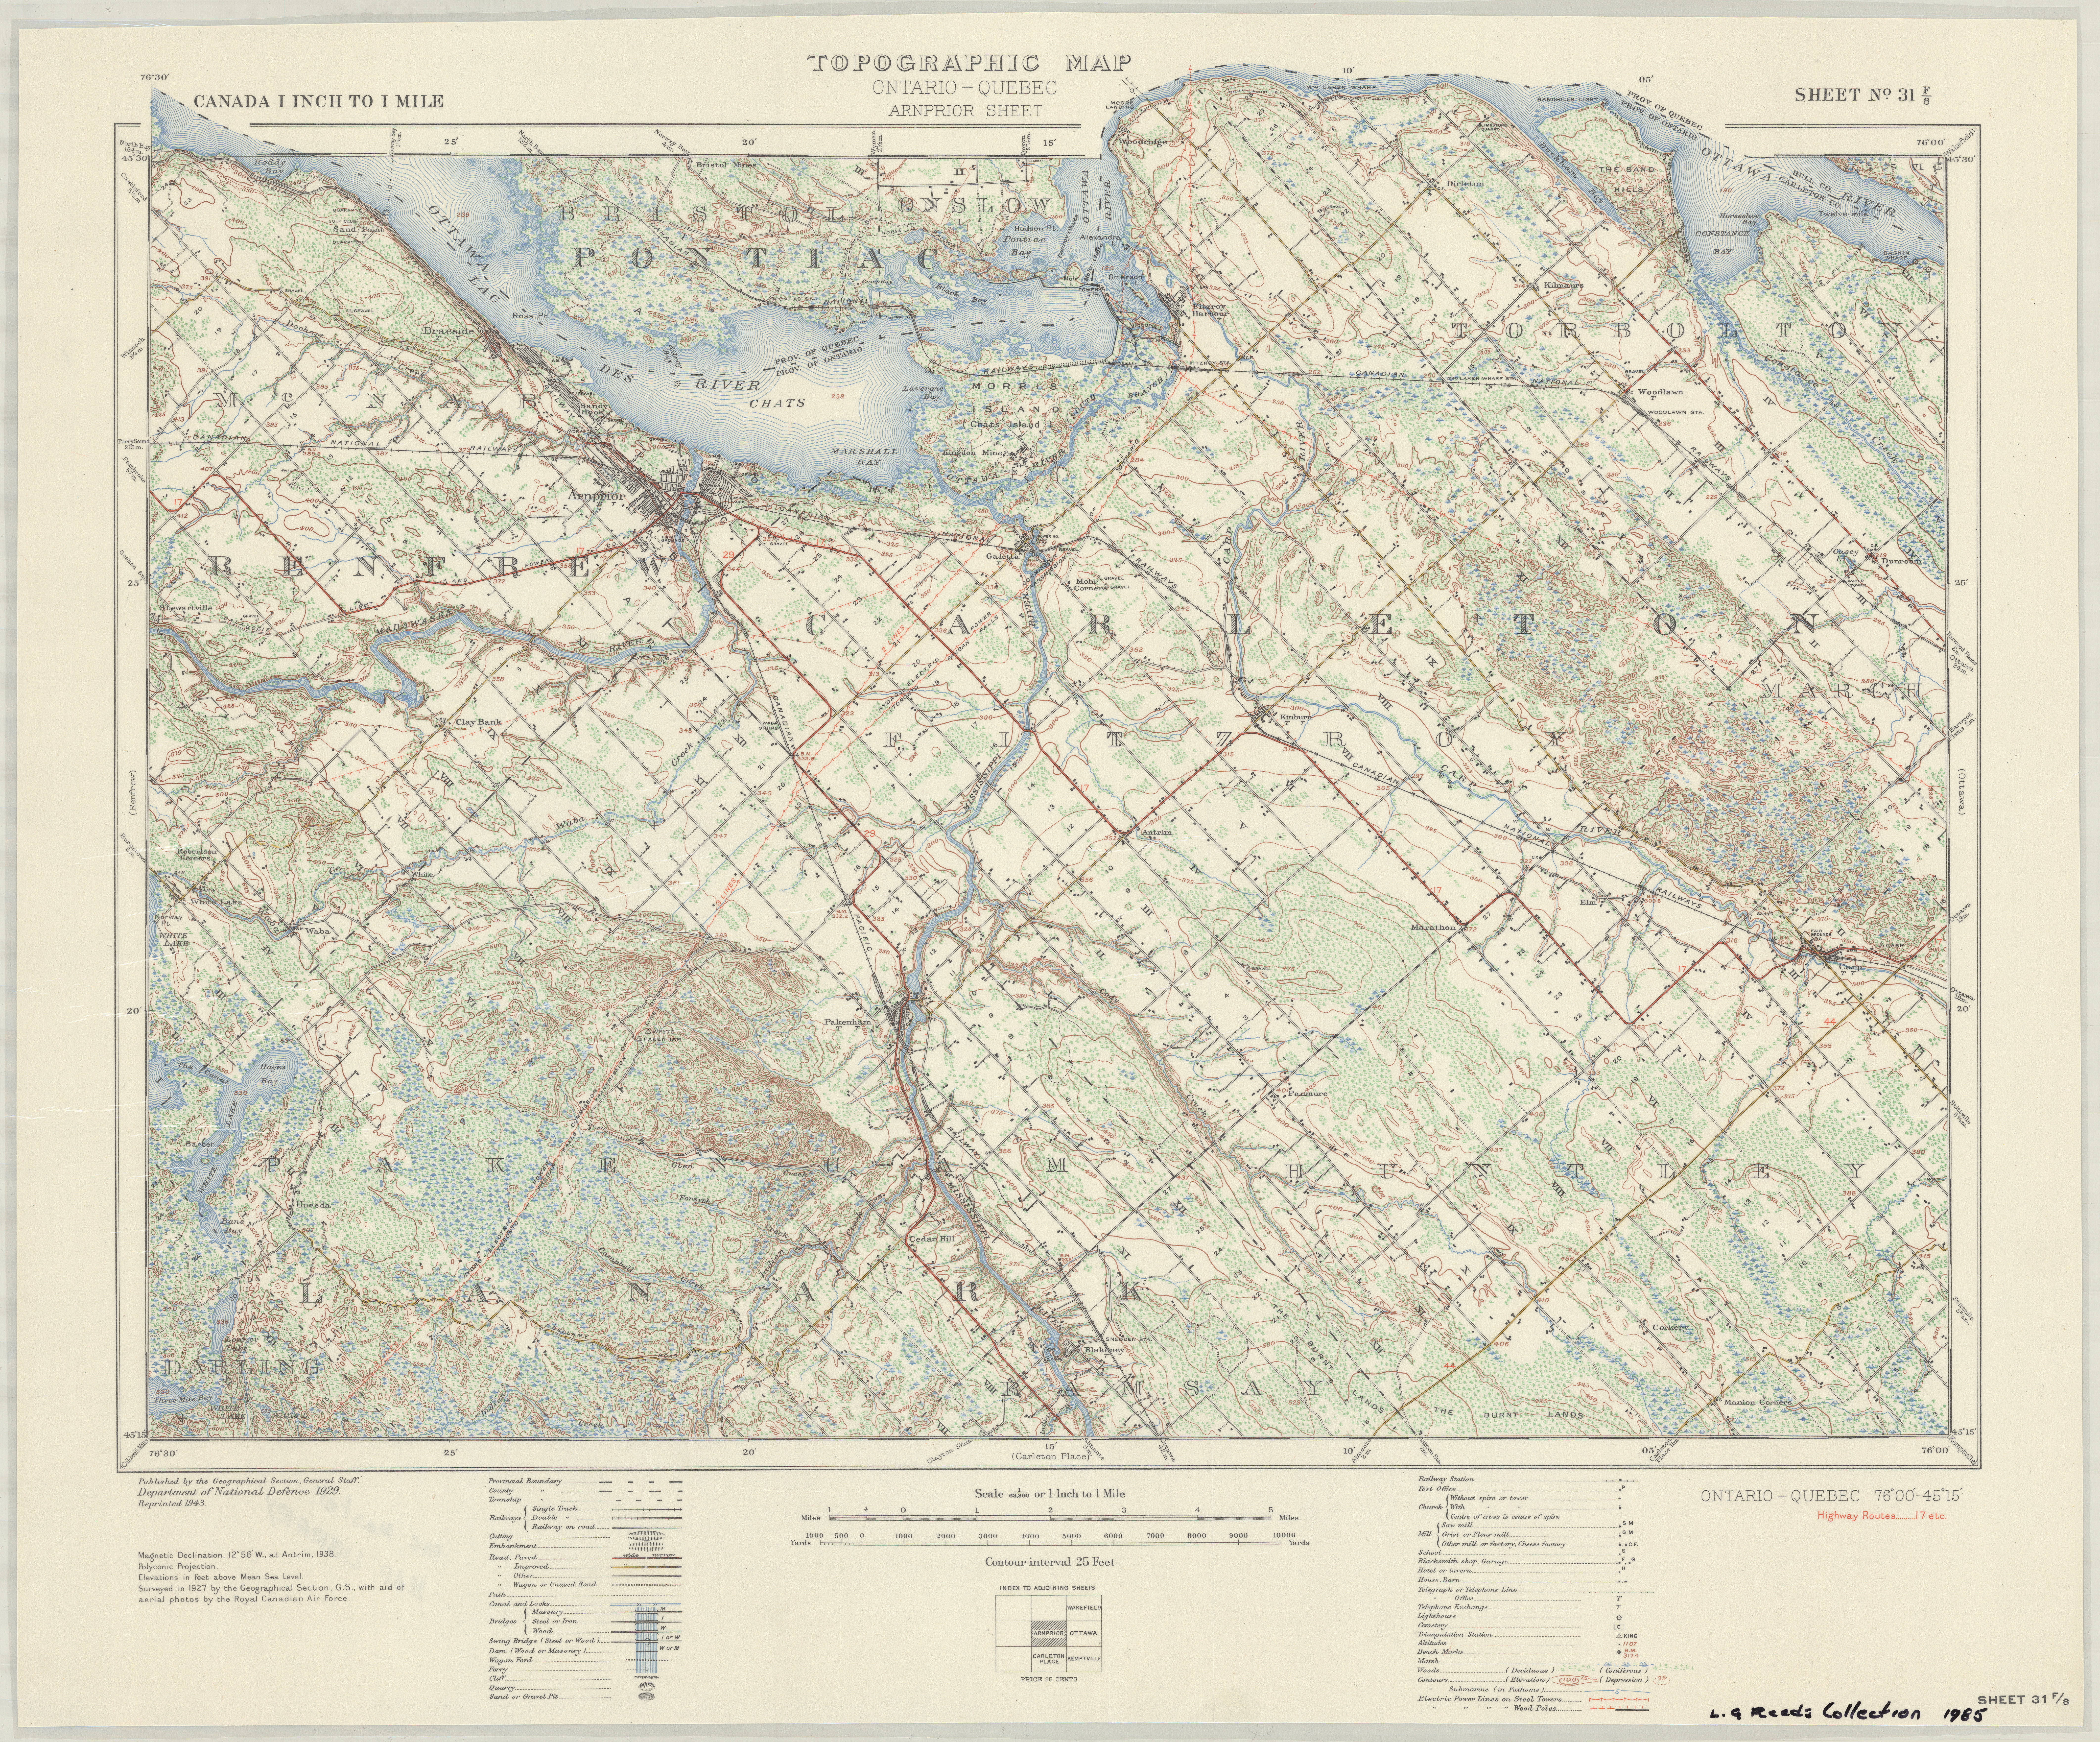 Ontario Topographic Map.Full Collection